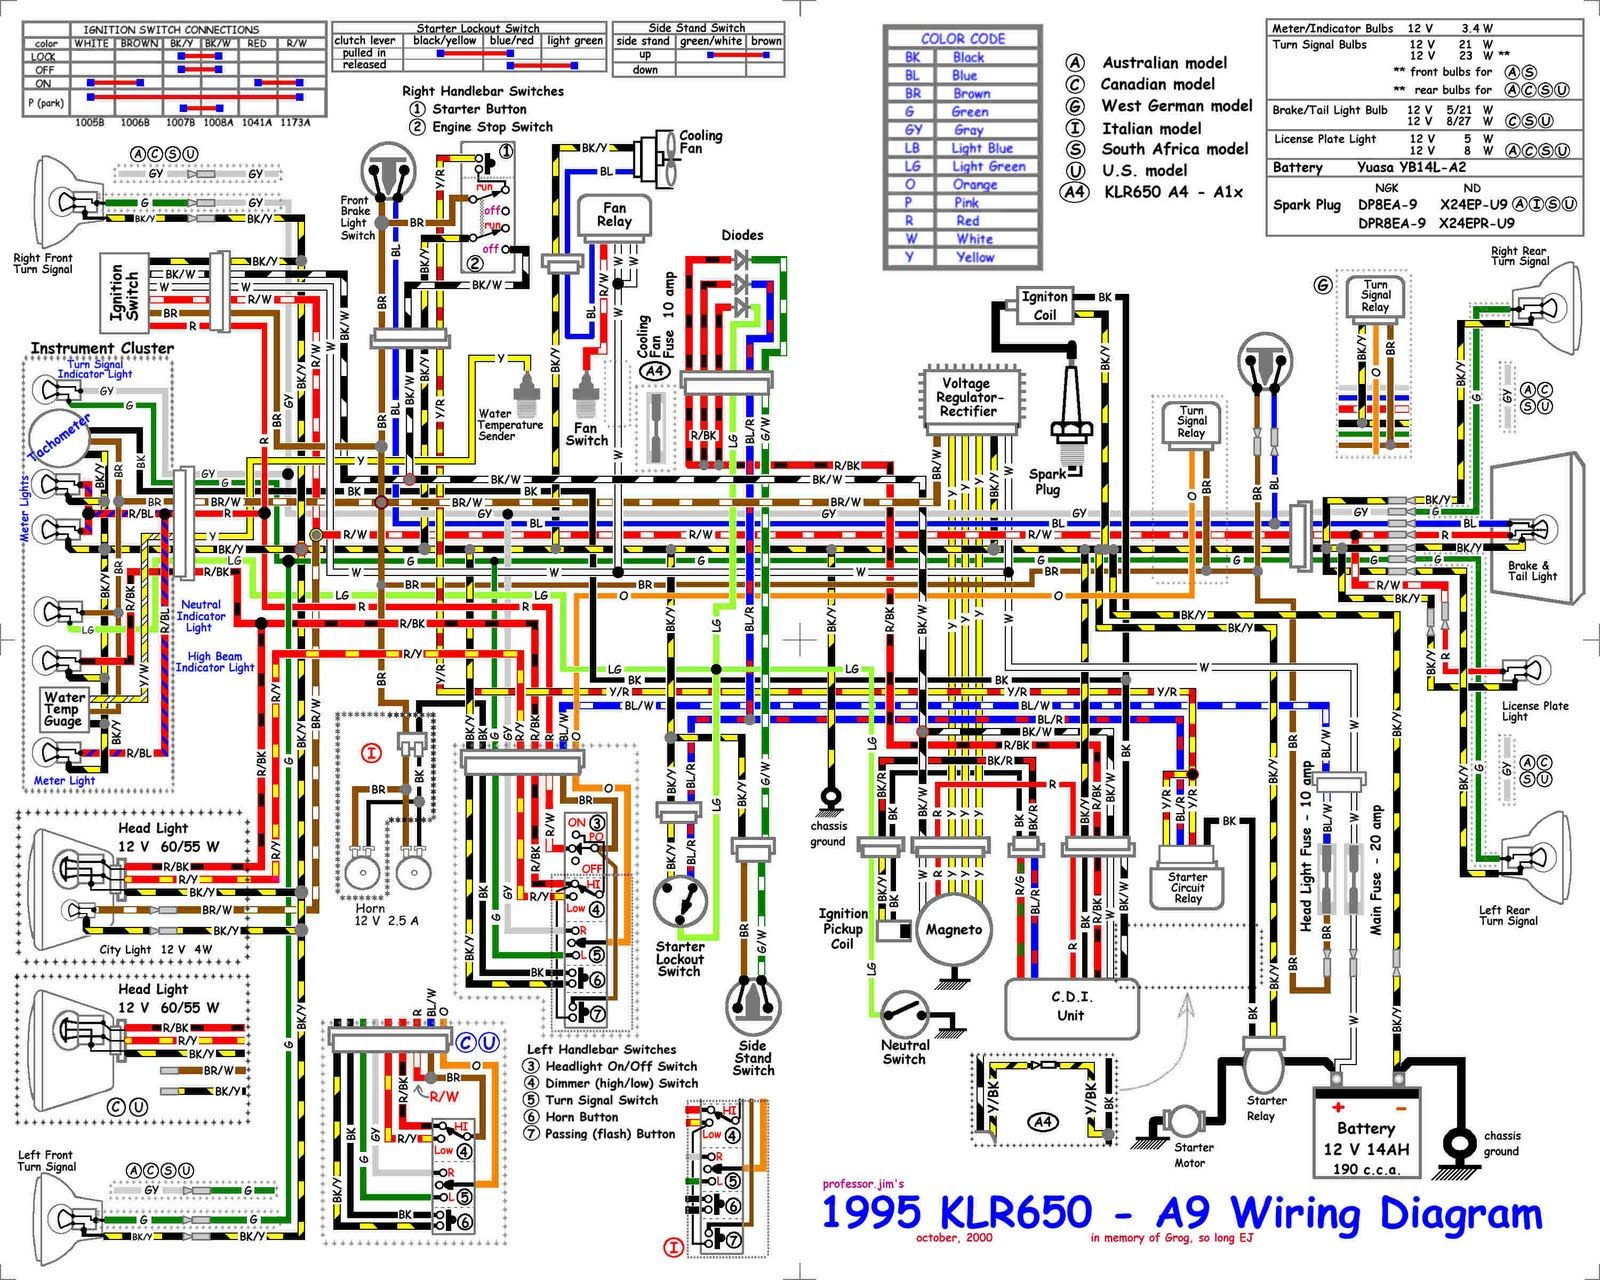 medium resolution of 1986 monte carlo wiring diagram wiring diagram today1986 monte carlo wiring diagram wiring diagram forward 1986